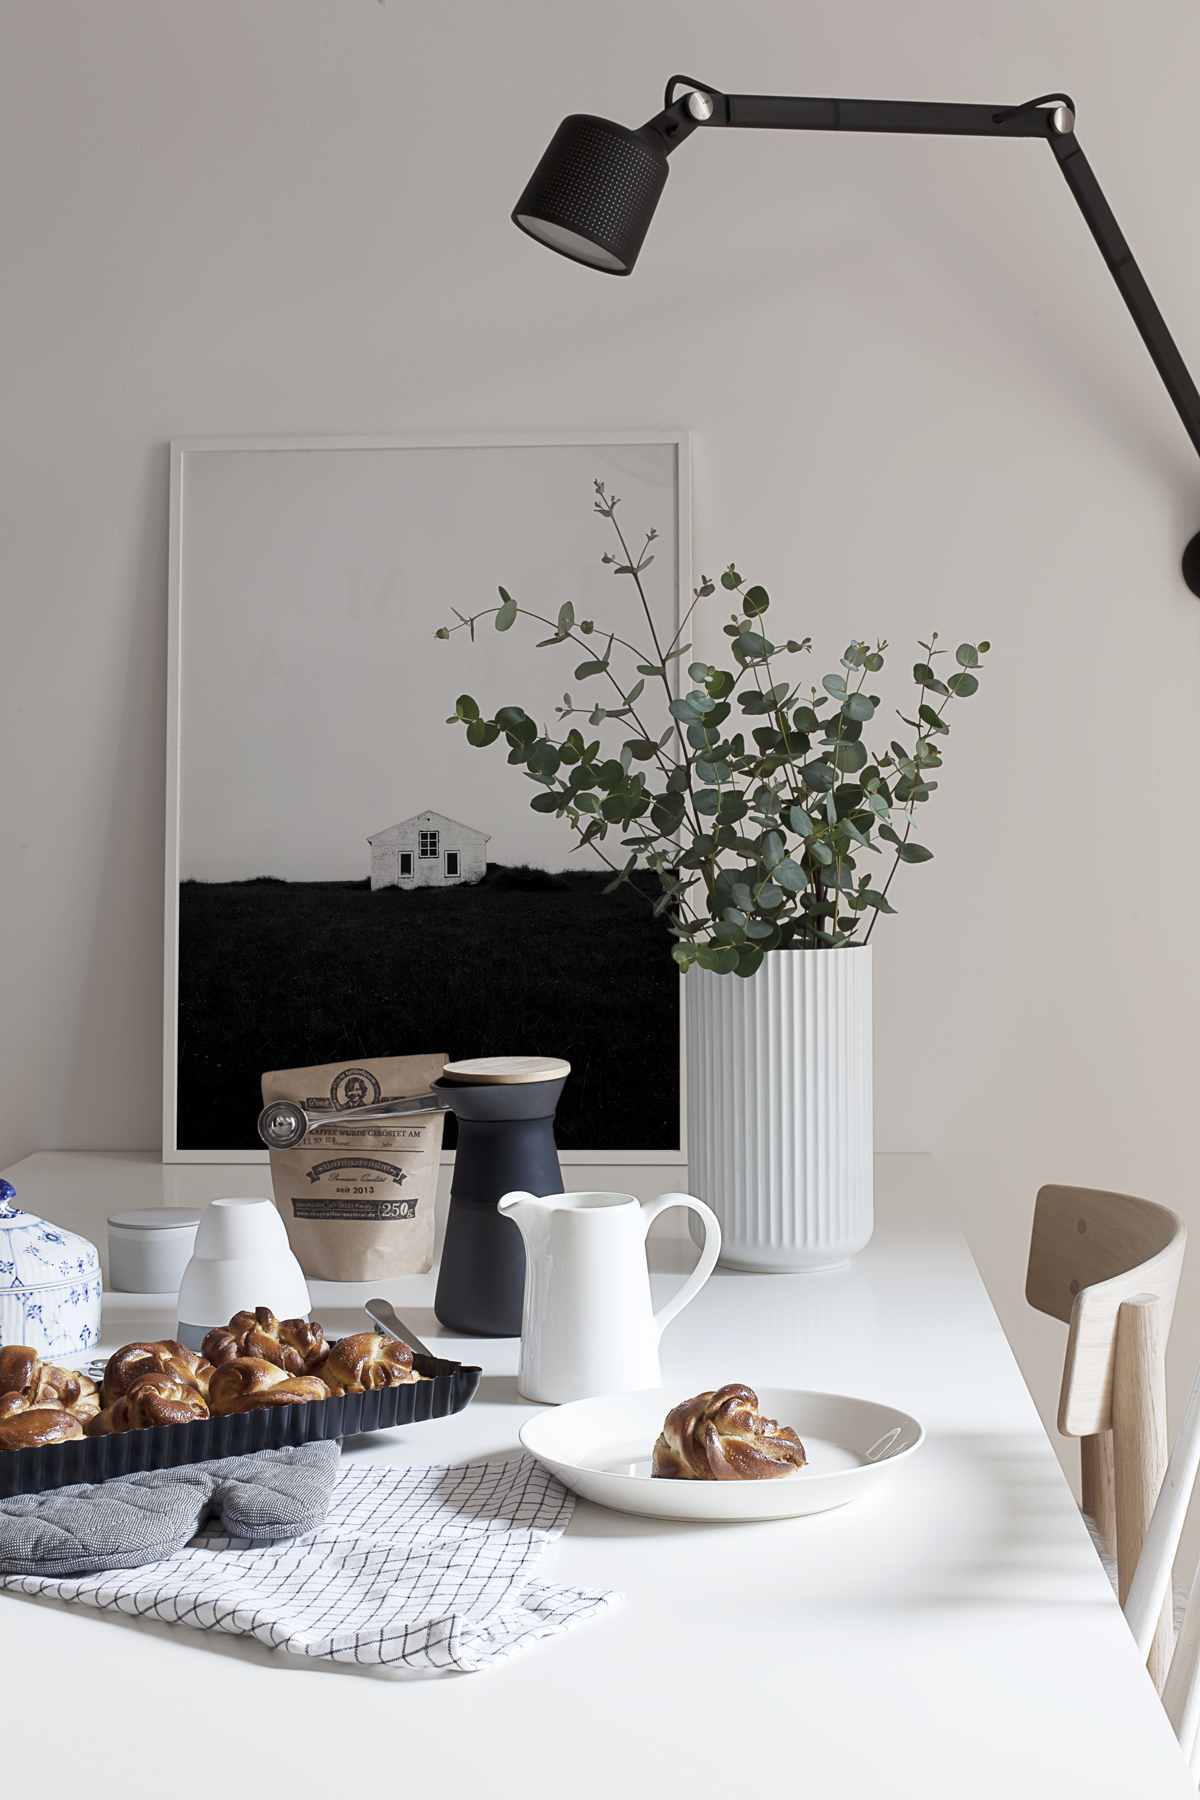 baking session with dille kamille coco lapine designcoco lapine design. Black Bedroom Furniture Sets. Home Design Ideas